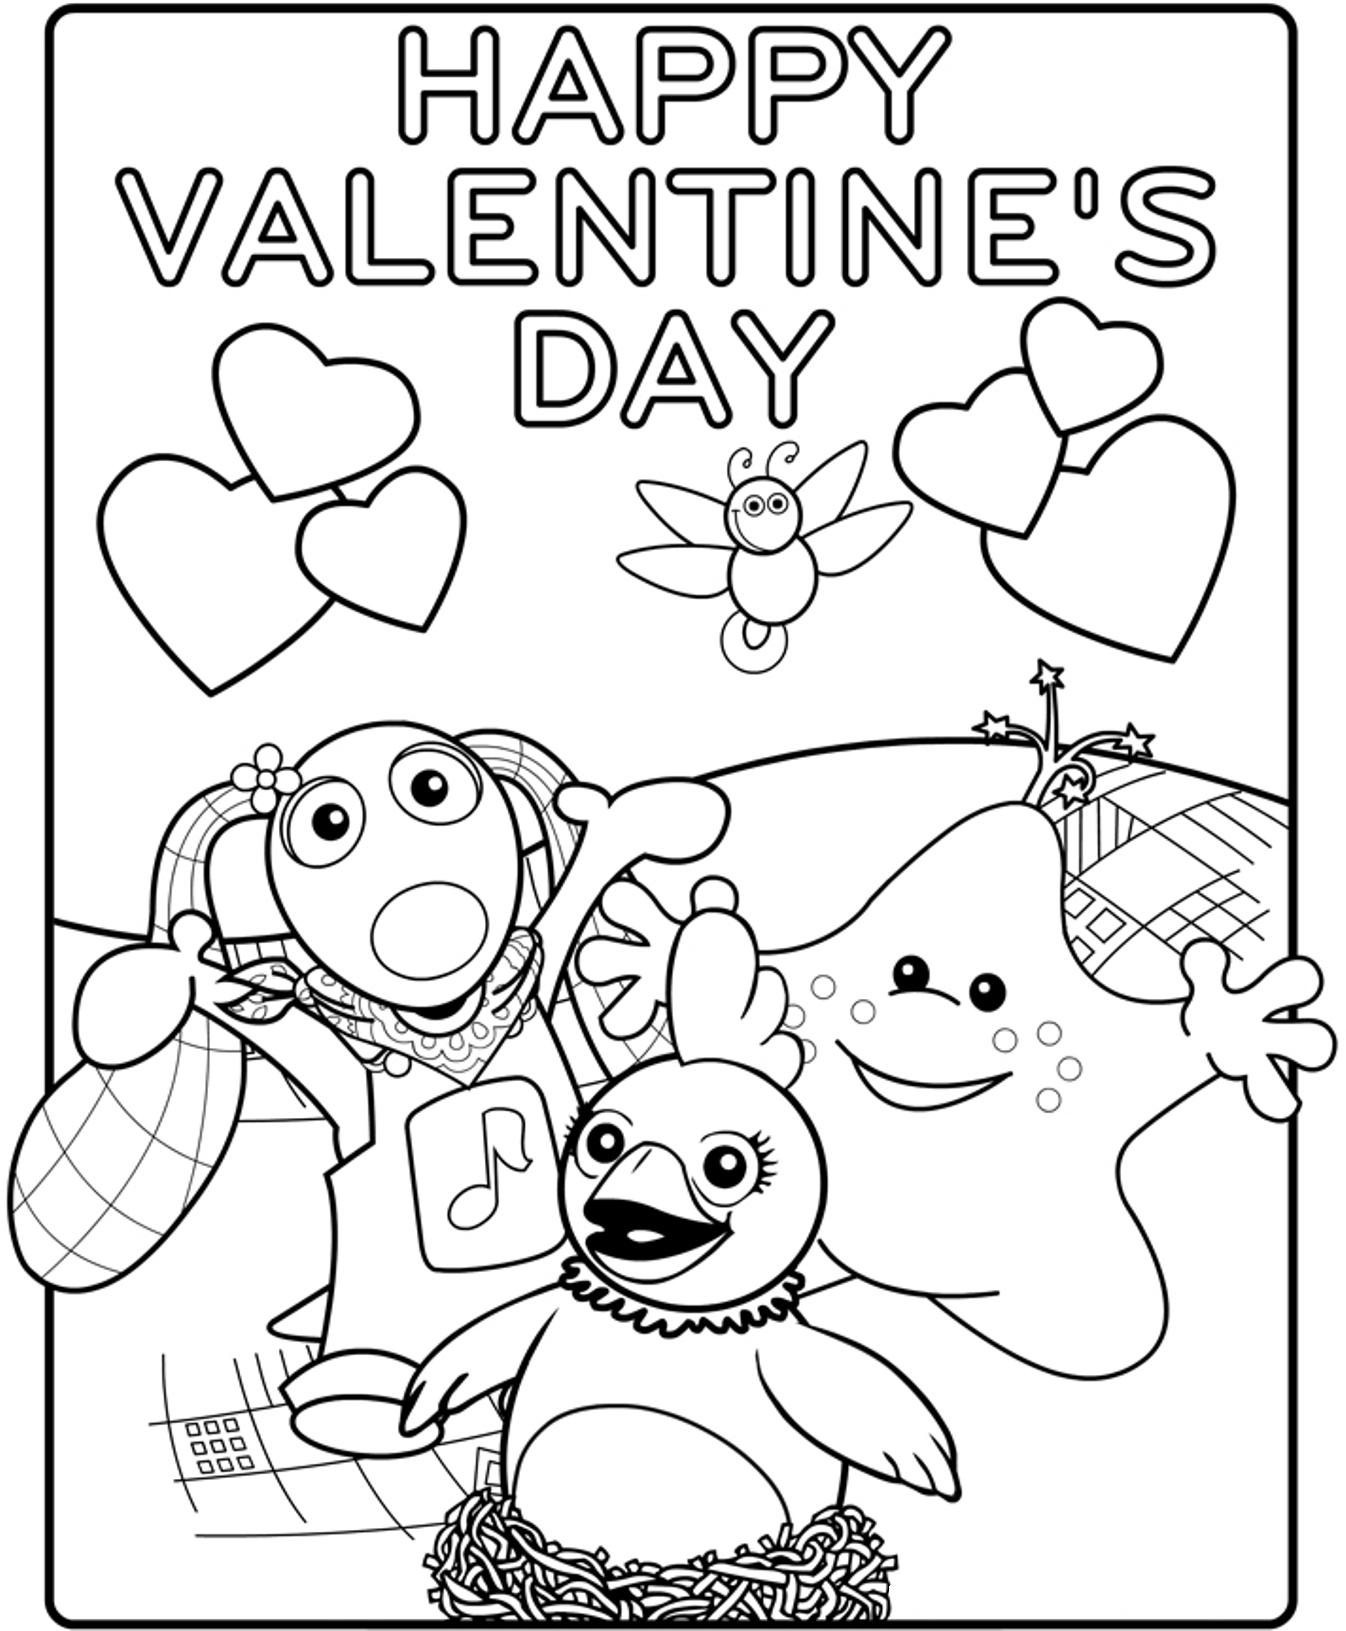 valentines coloring page valentine coloring pages pdf at getcoloringscom free valentines coloring page